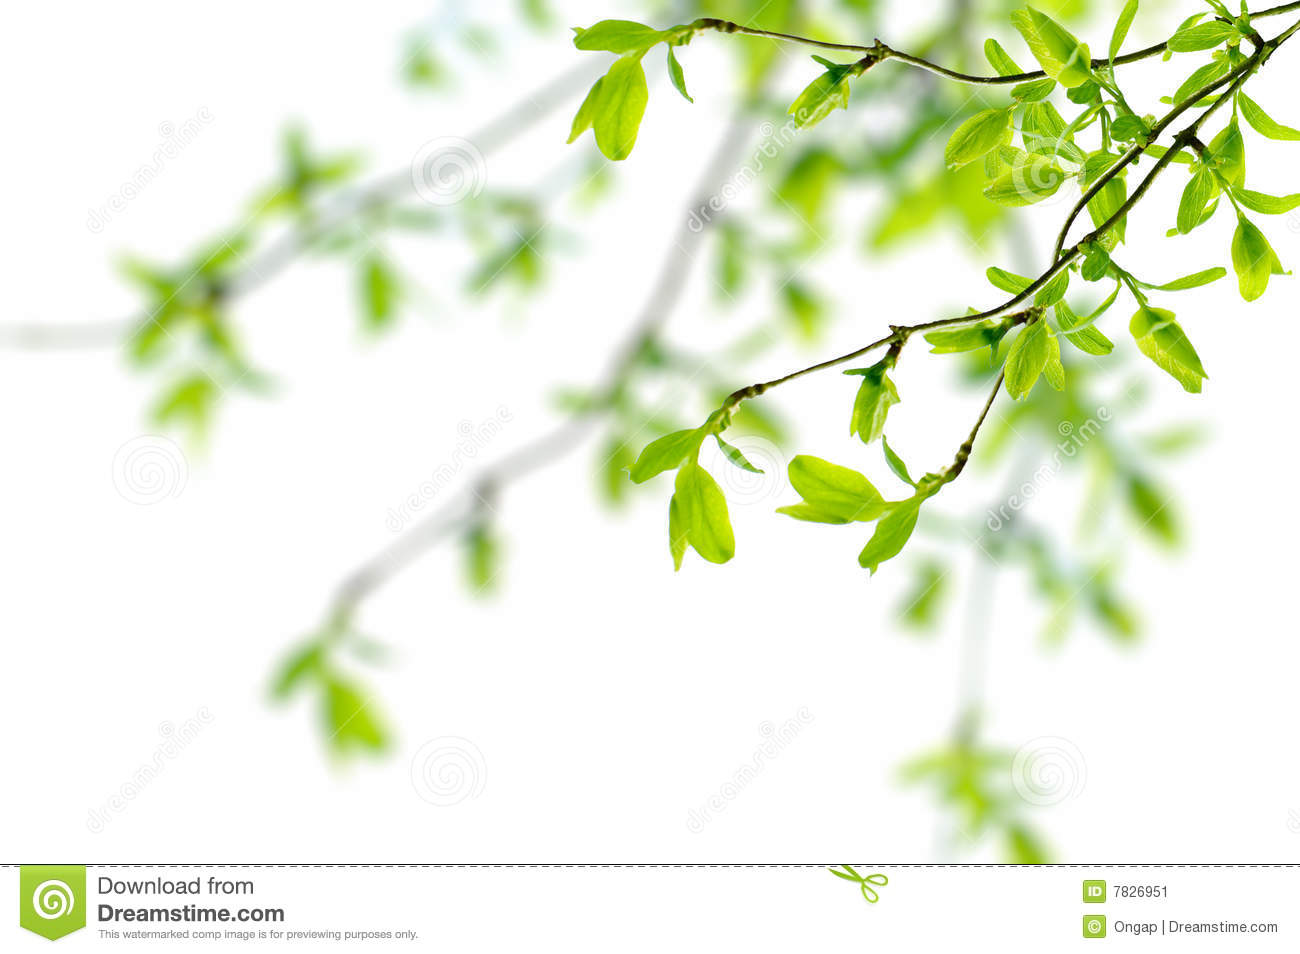 Spring branch clipart #15